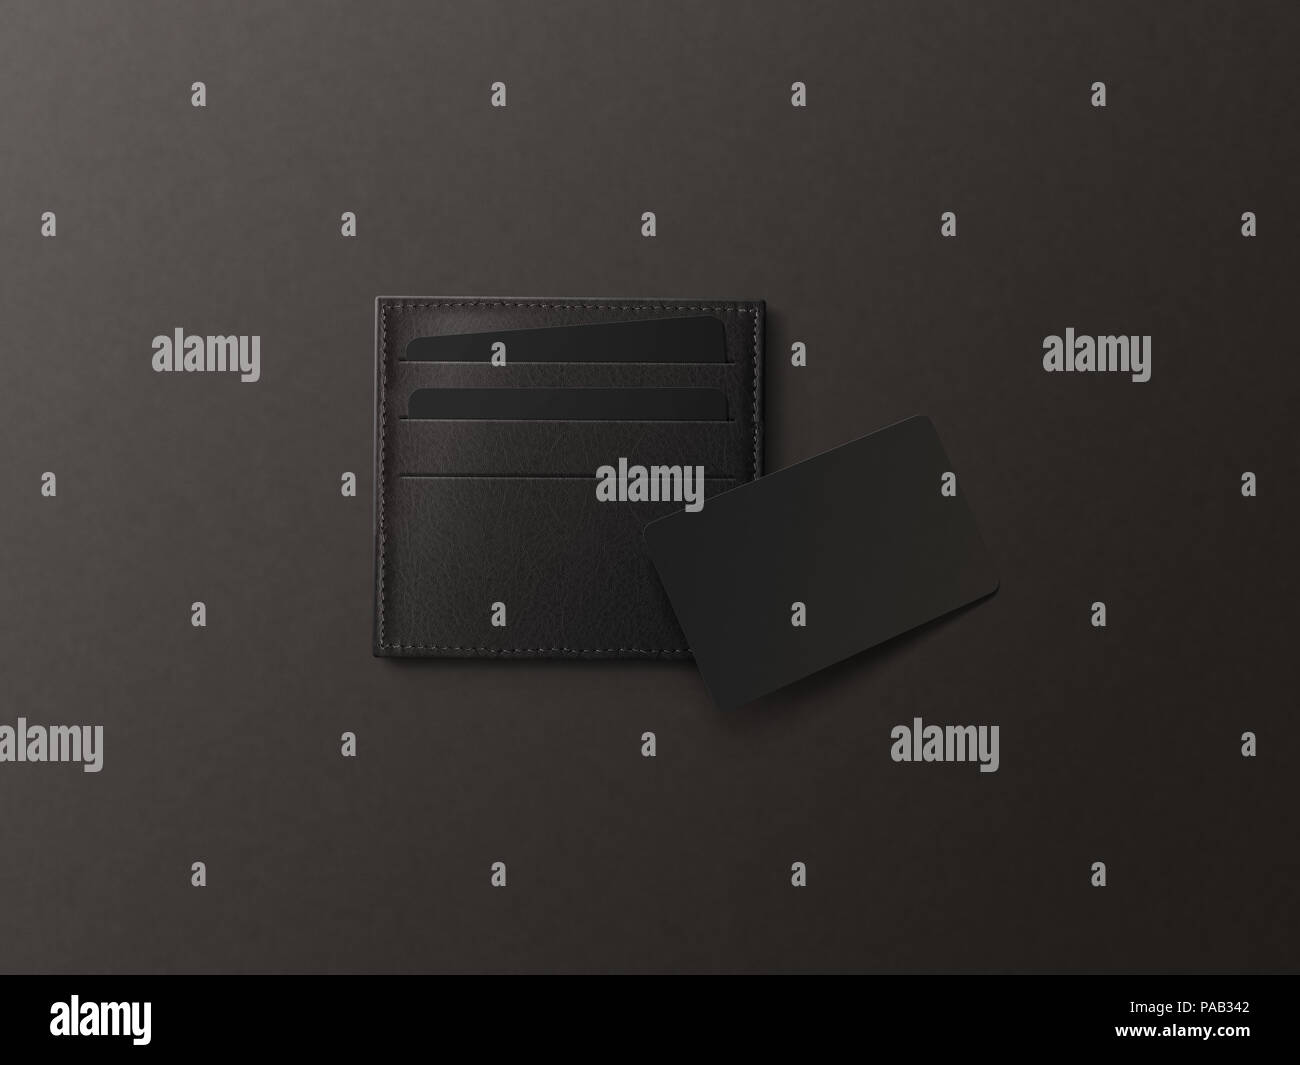 Leather card holder with blank black card mock up isolated. Business credit cards mockup in sleeve cardholder pocket. Clear paper visiting id cards in - Stock Image